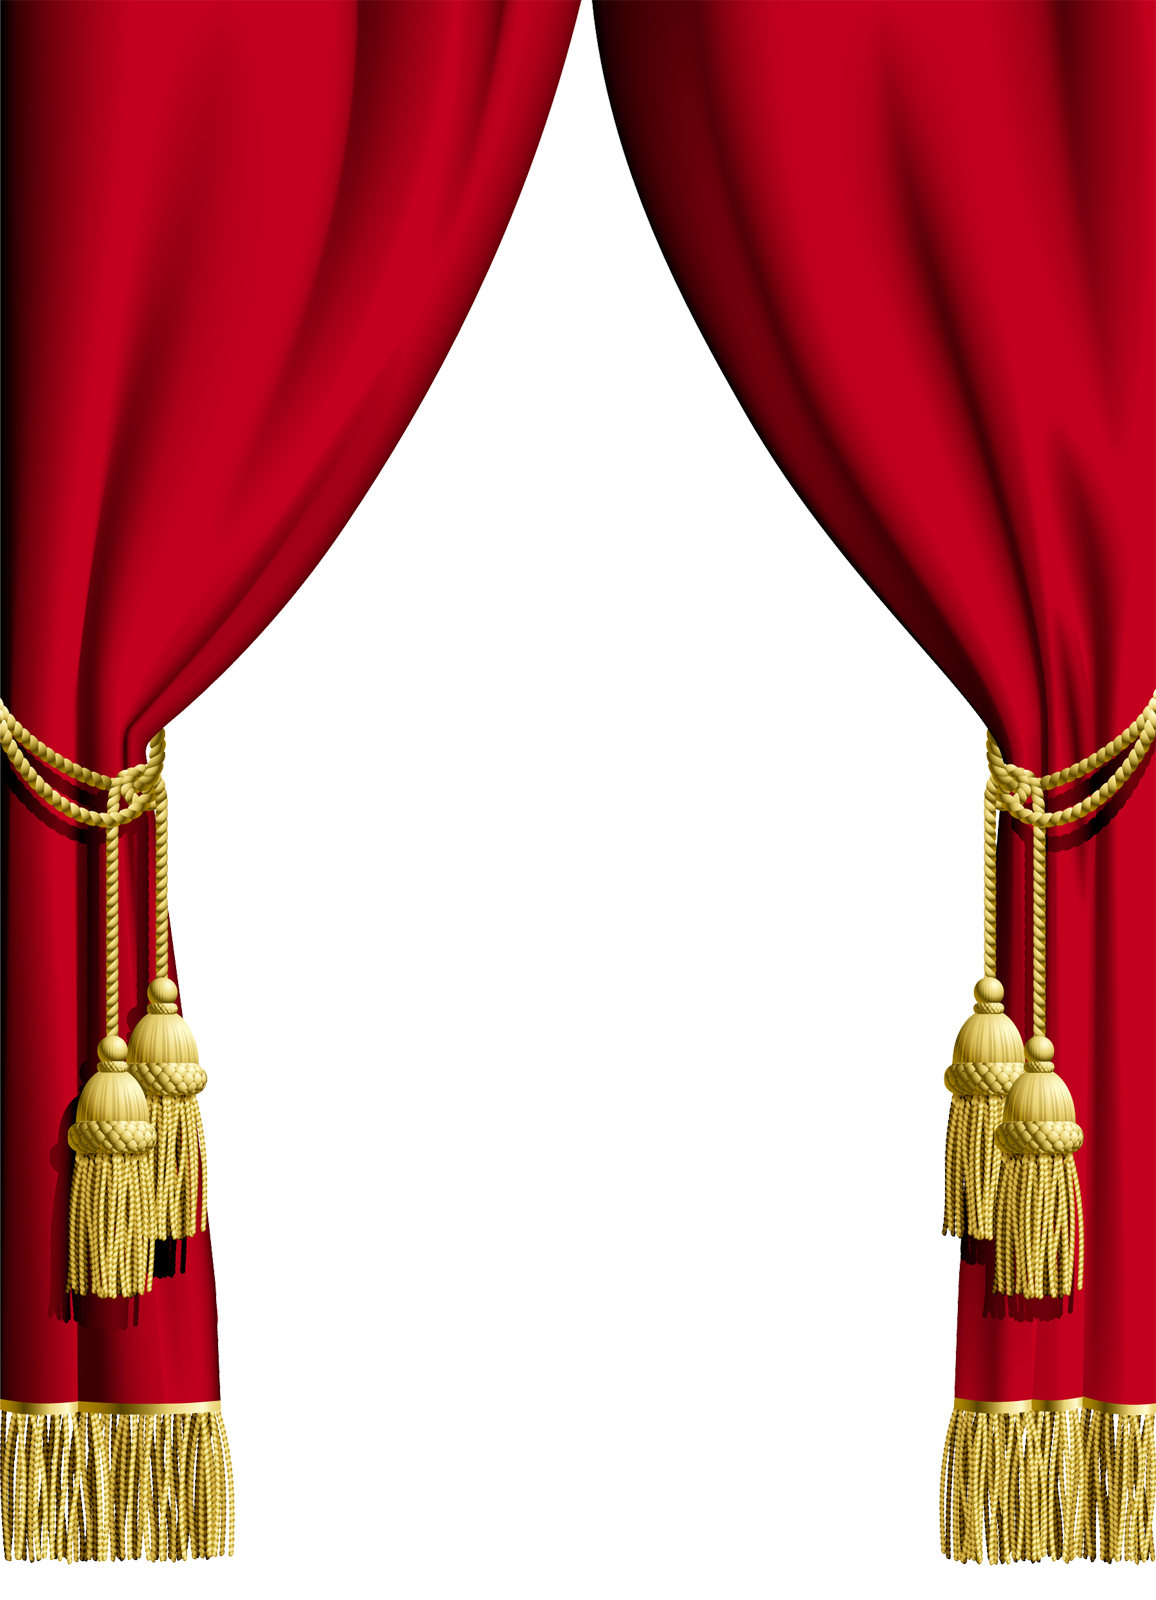 Curtain clipart real. Curtains png images free